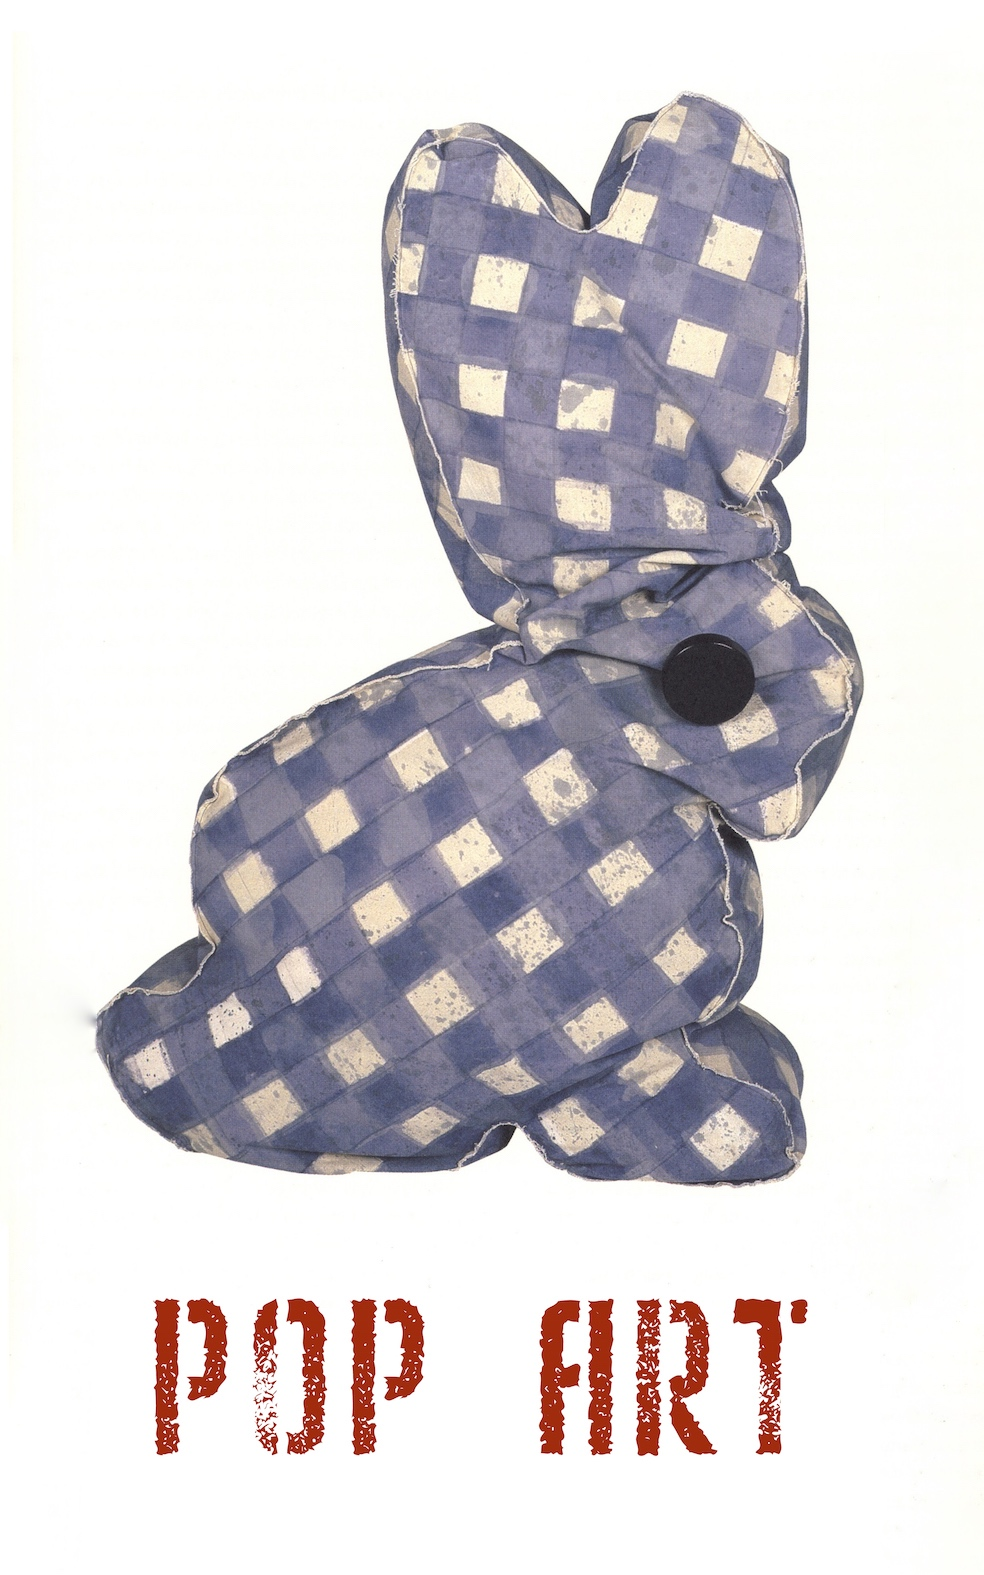 Claes Oldenburg, Calico Bunny 1987